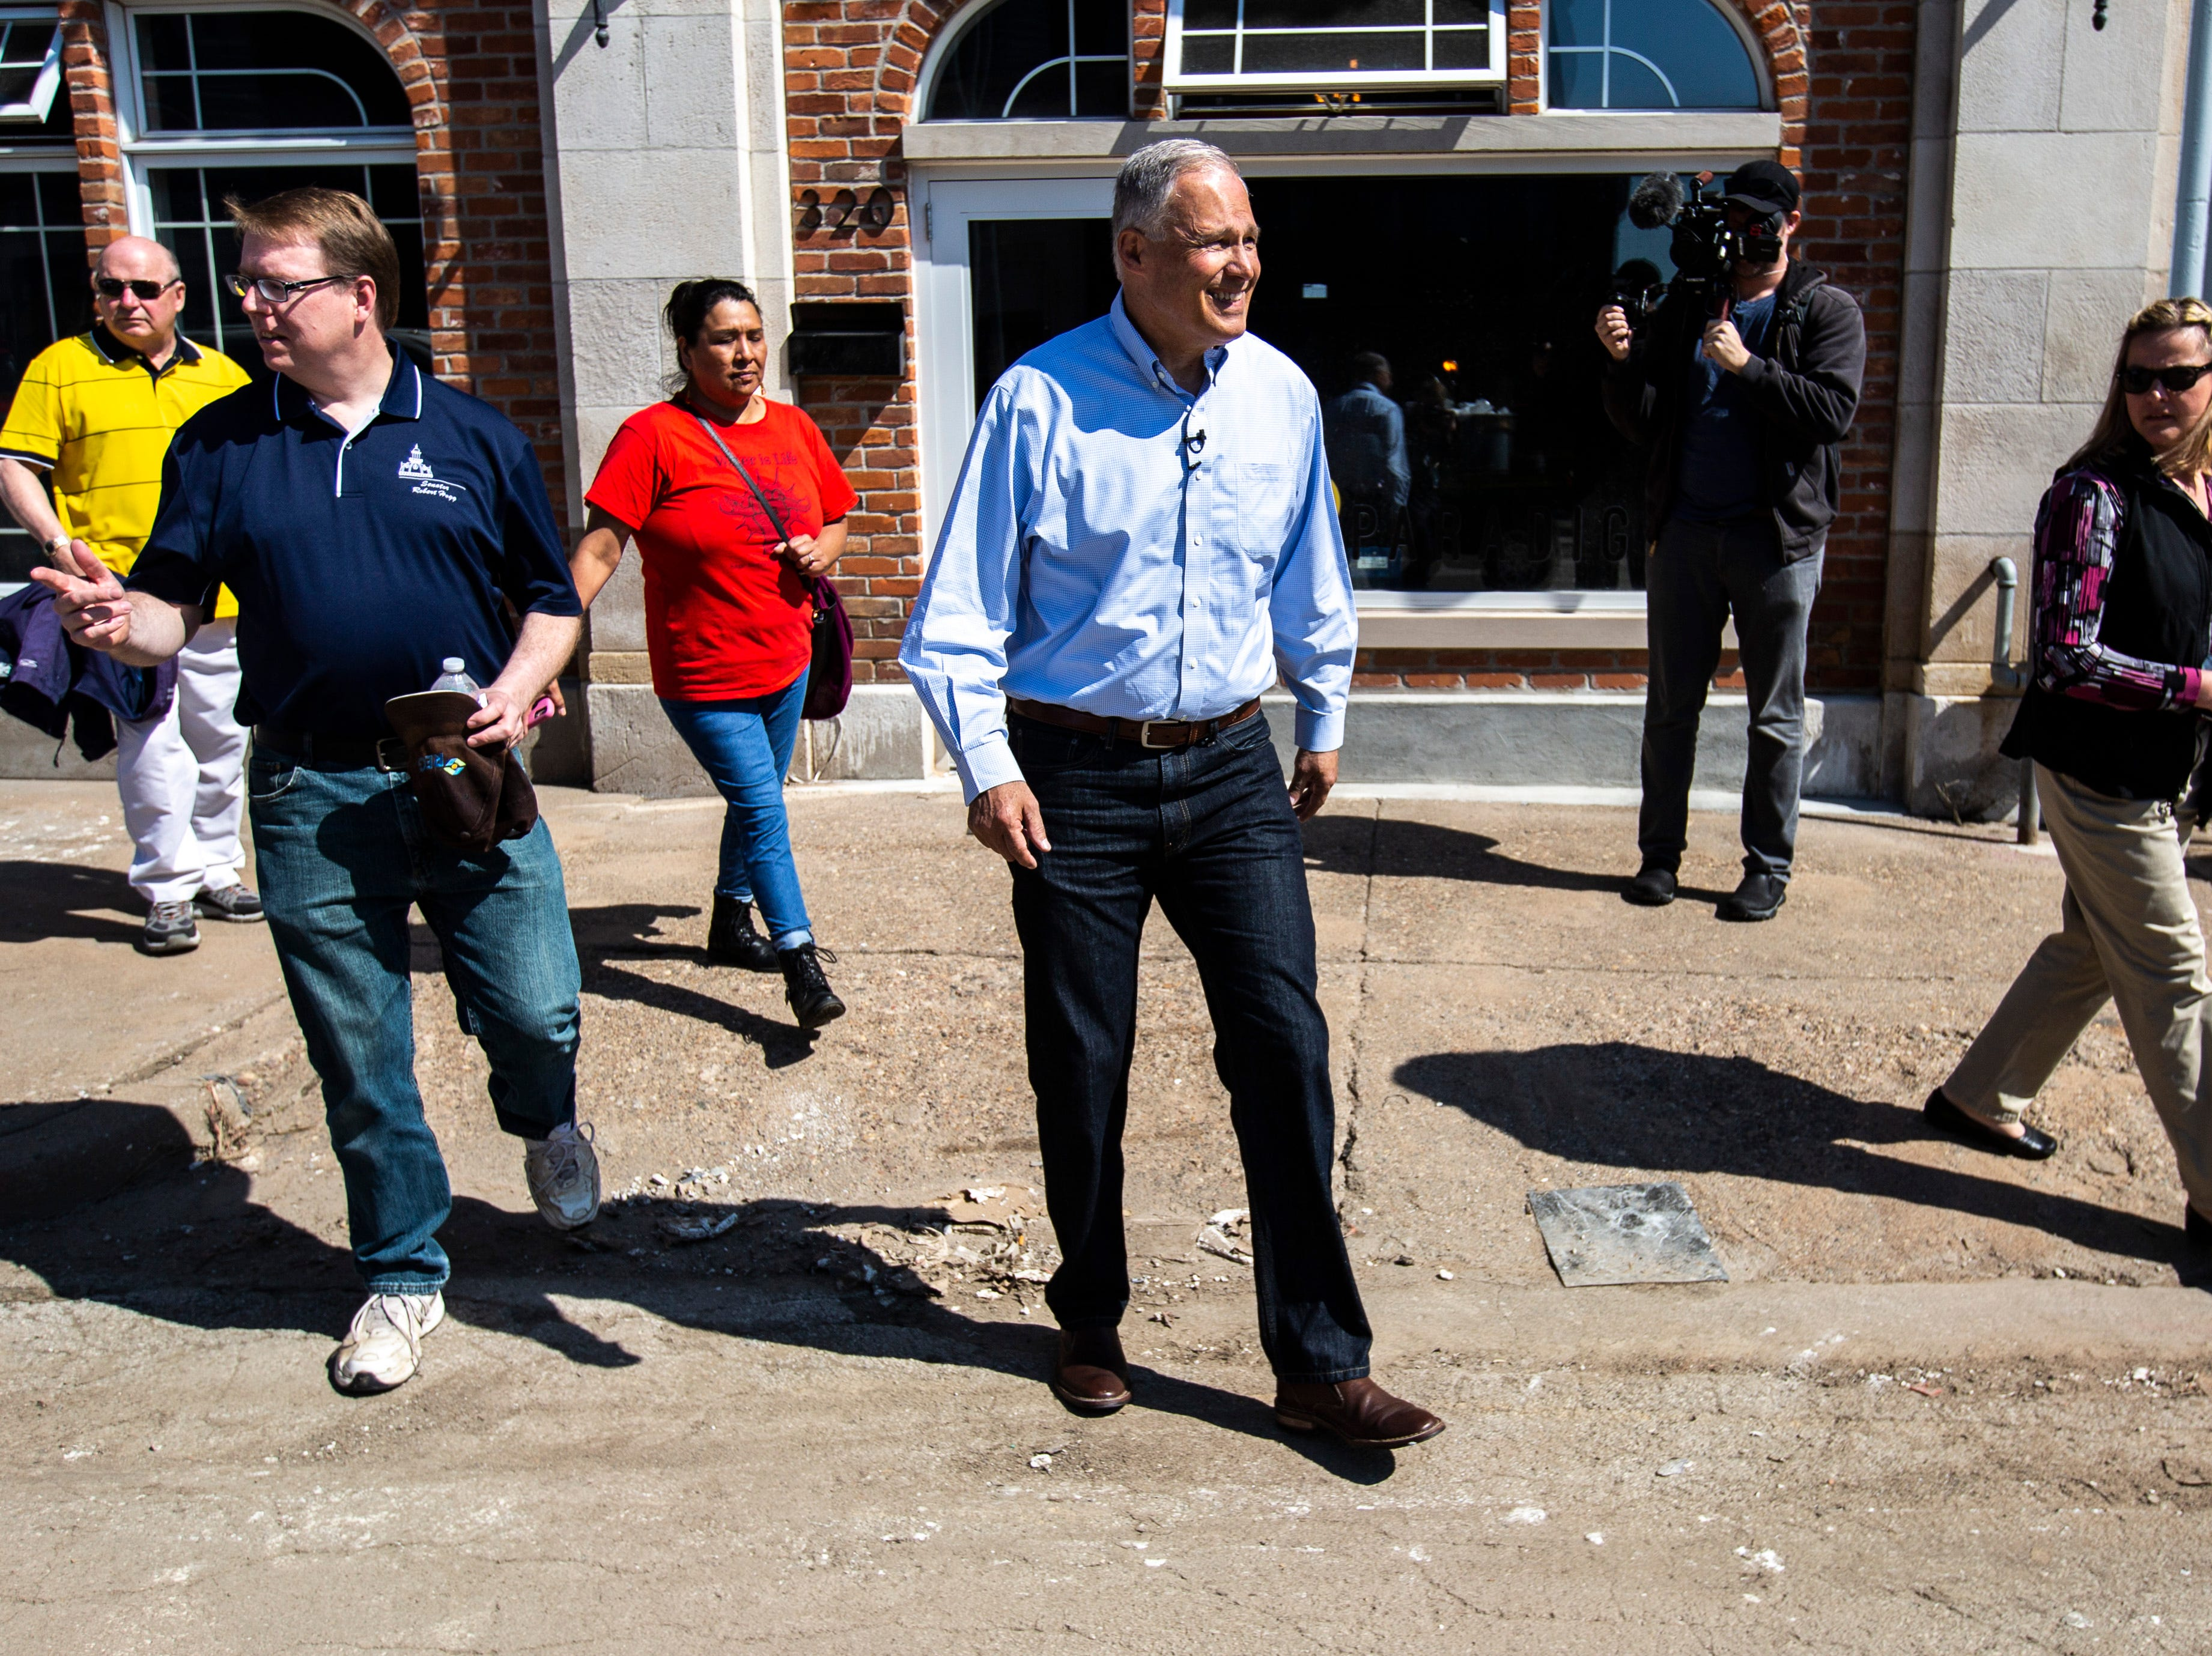 Washington Gov. Jay Inslee tours areas impacted by floodwaters, Wednesday, May 15, 2019, in downtown Davenport, Iowa.